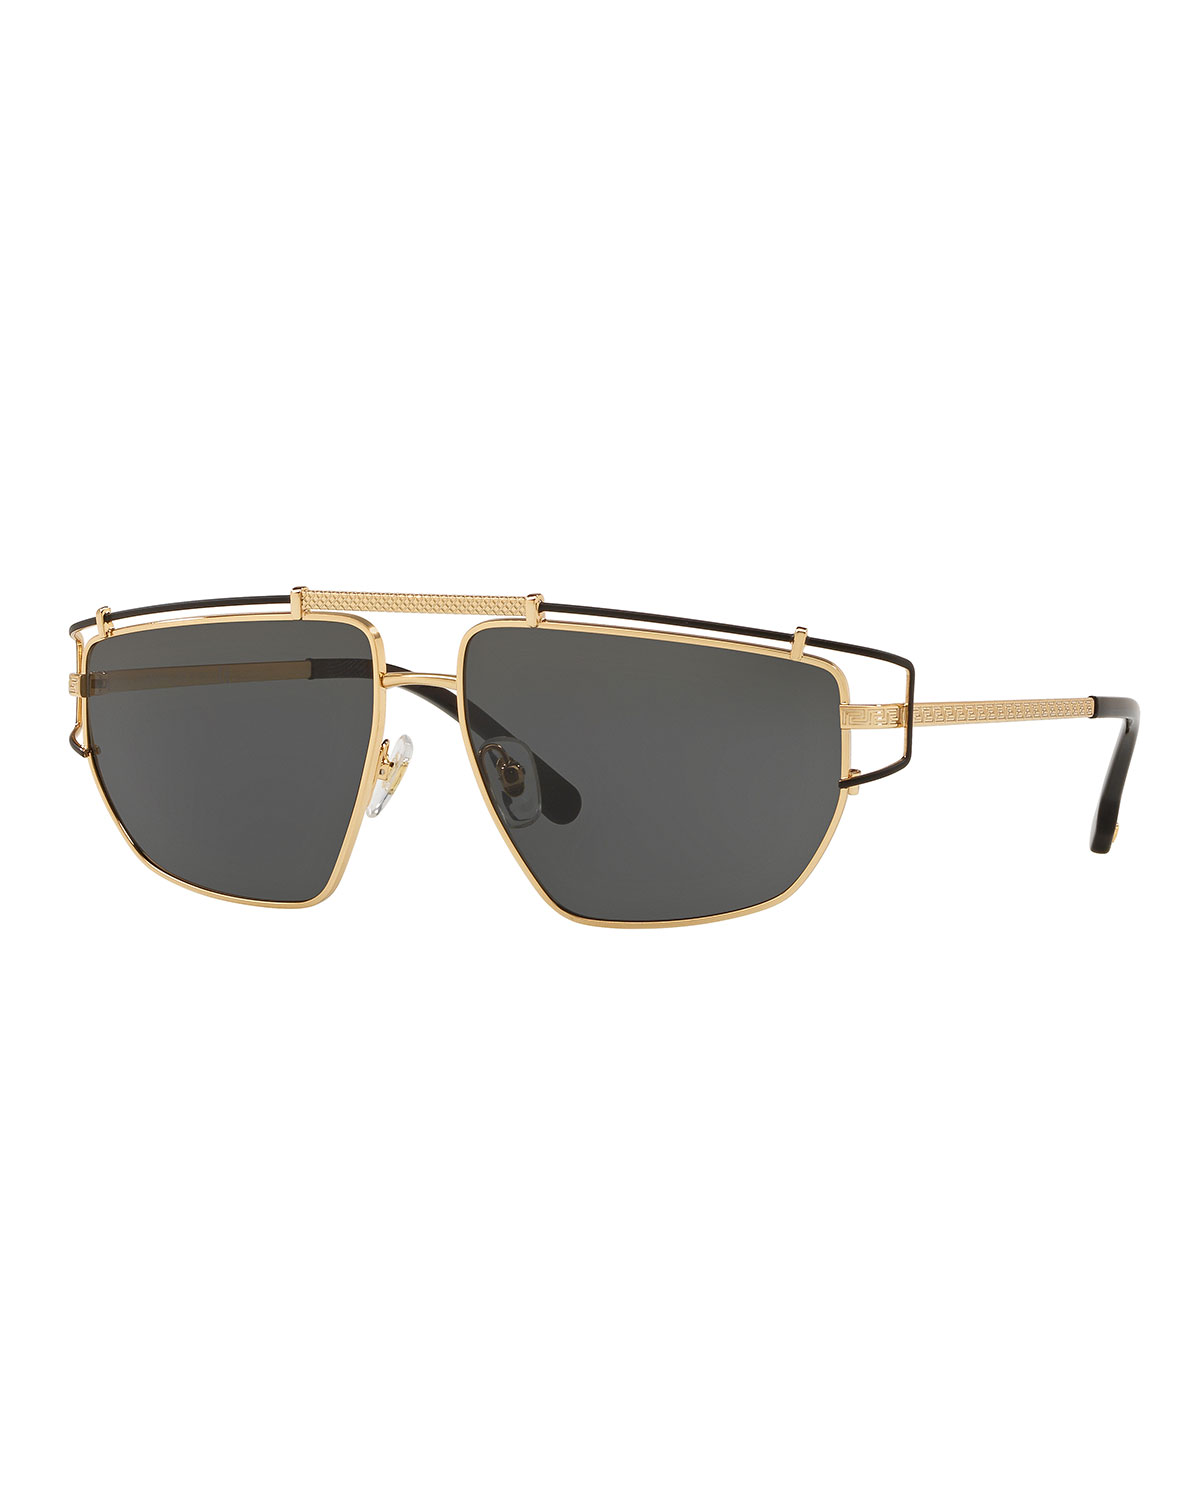 ab2691e9651 Versace Men s Wrap-Style Aviator Sunglasses